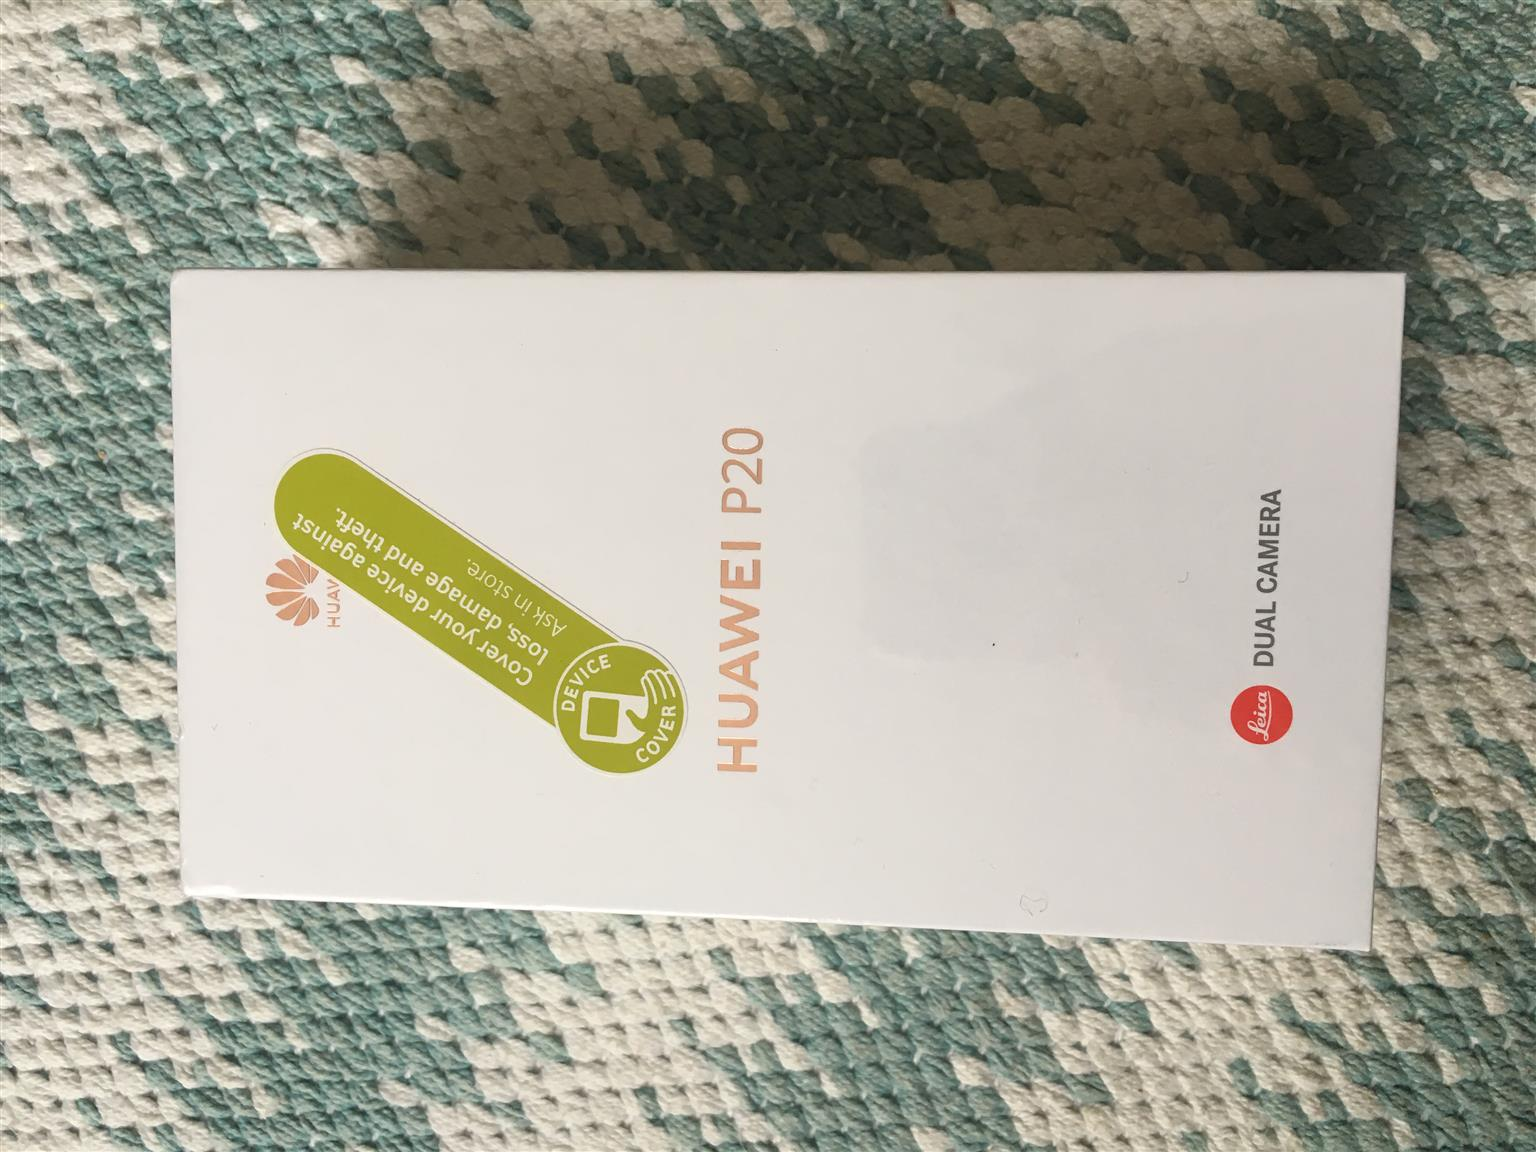 Brand new Huawei P20 midnight blue smartphone for sale